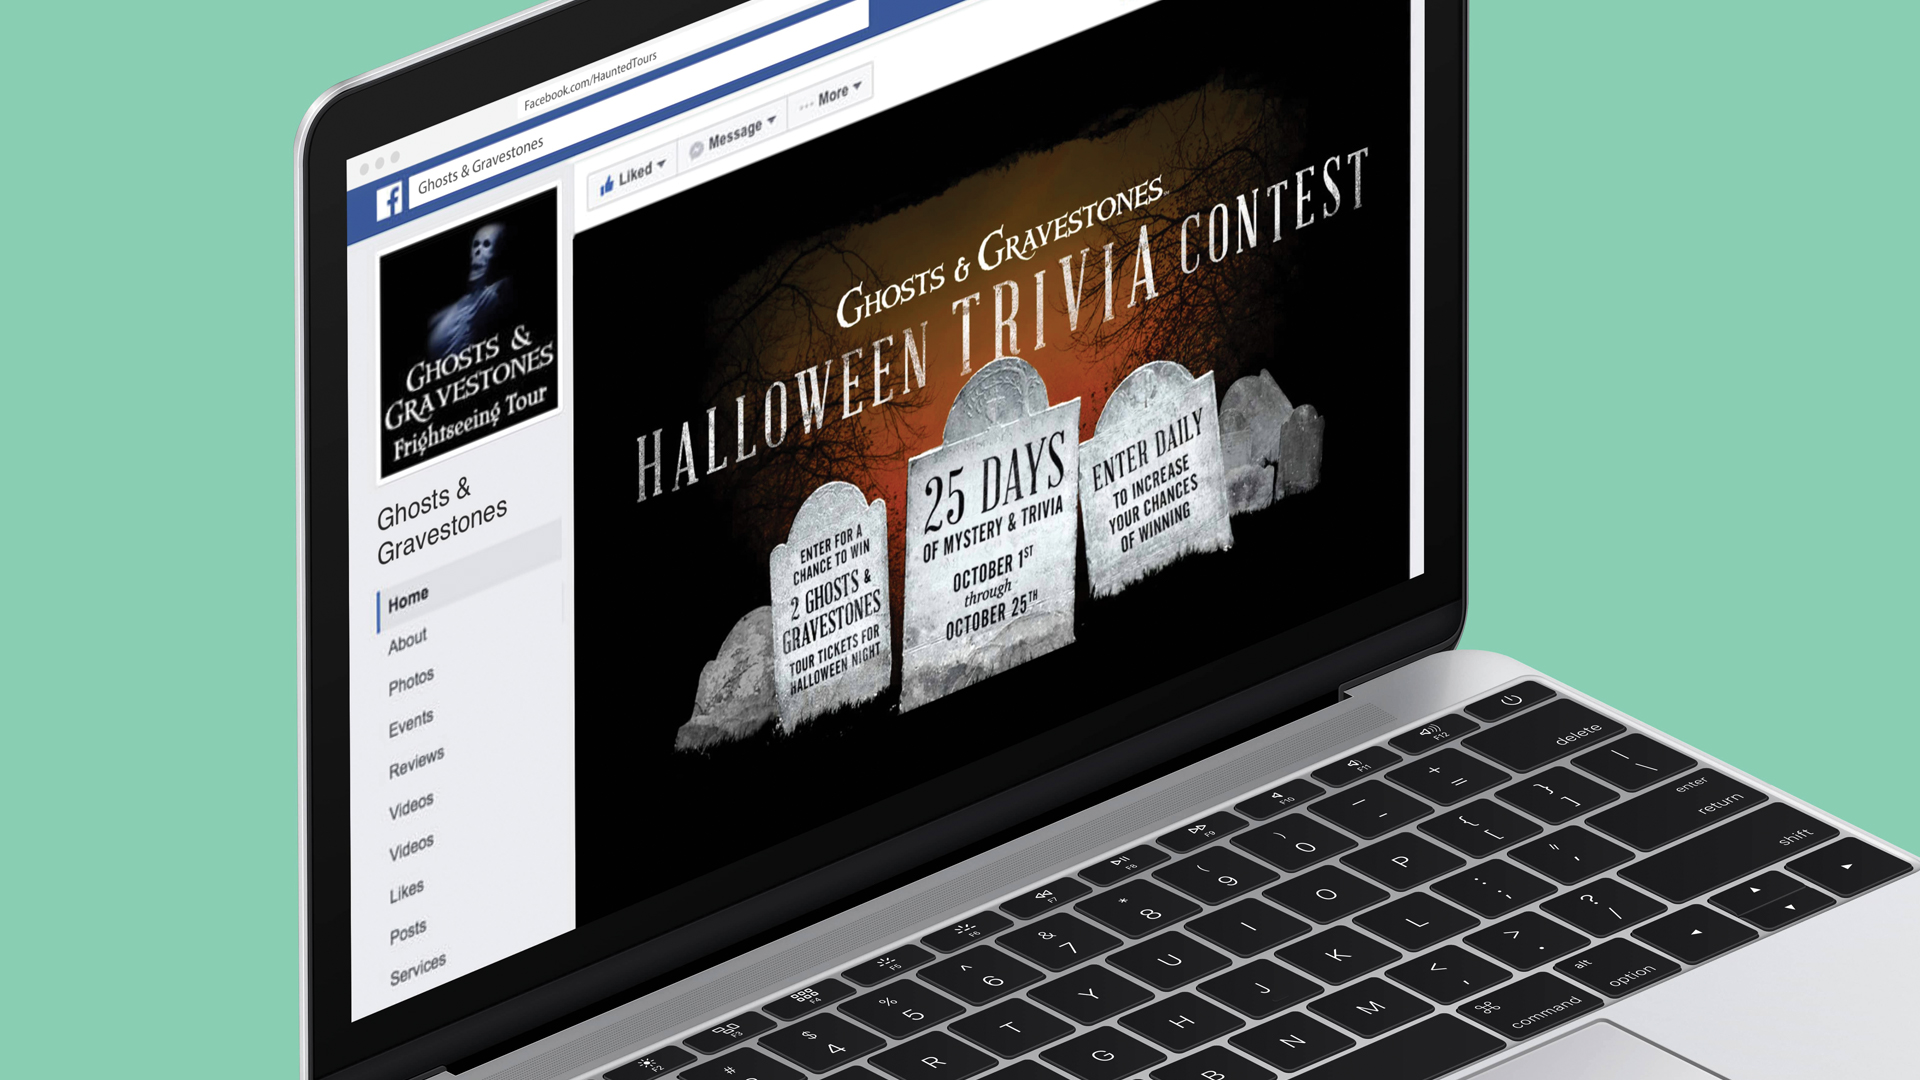 laptop screen showing halloween trivia contest page